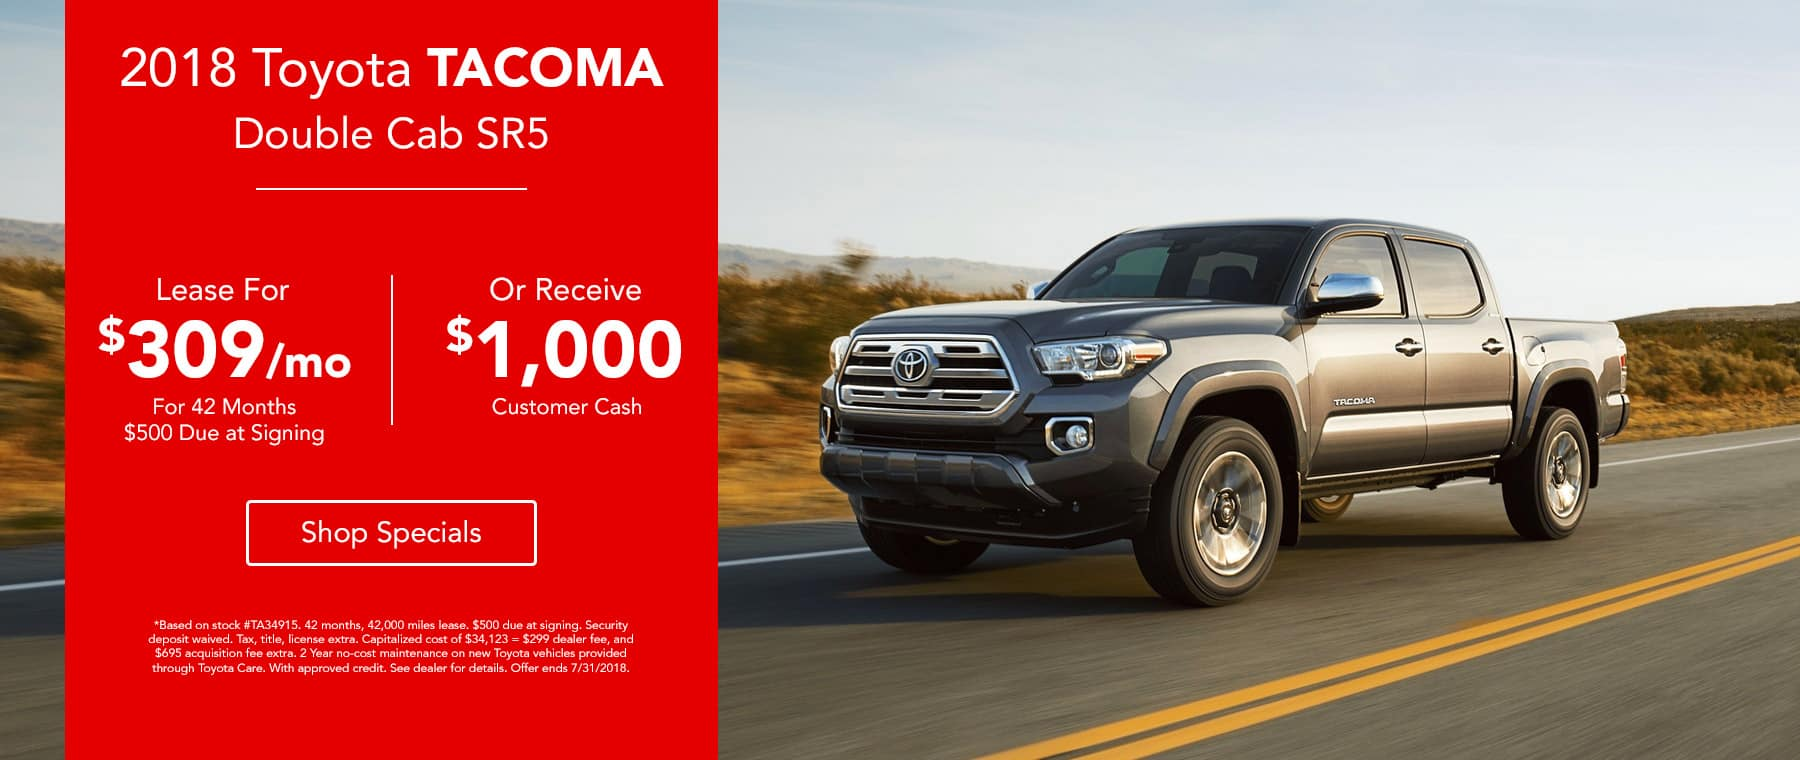 2018 Toyota Tacoma Double Cab Lease for $309 for 36 months